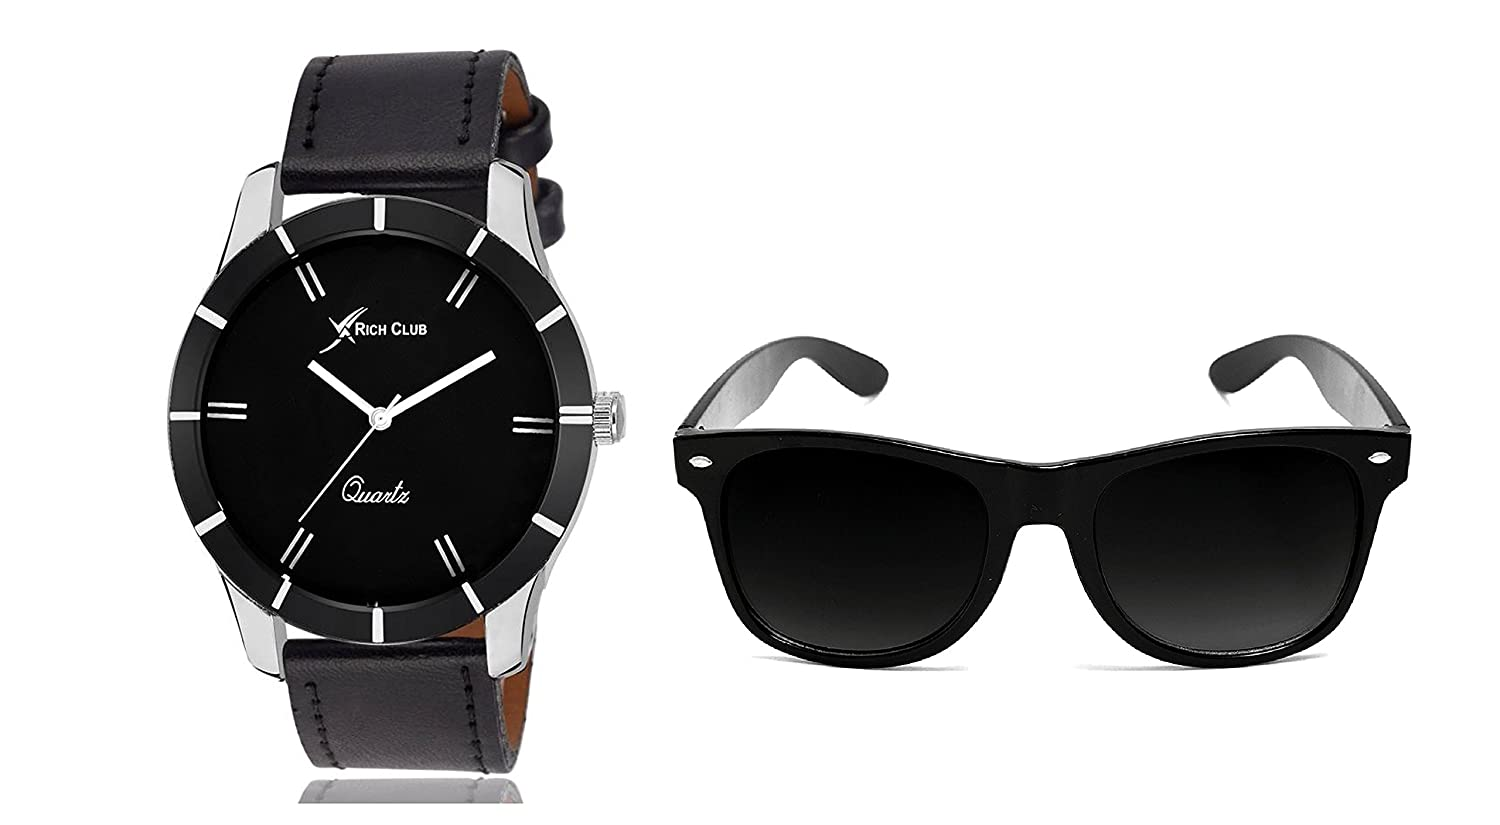 Casual Analog Black Watch And Wayfarer Sunglass combo set for men's and boy's